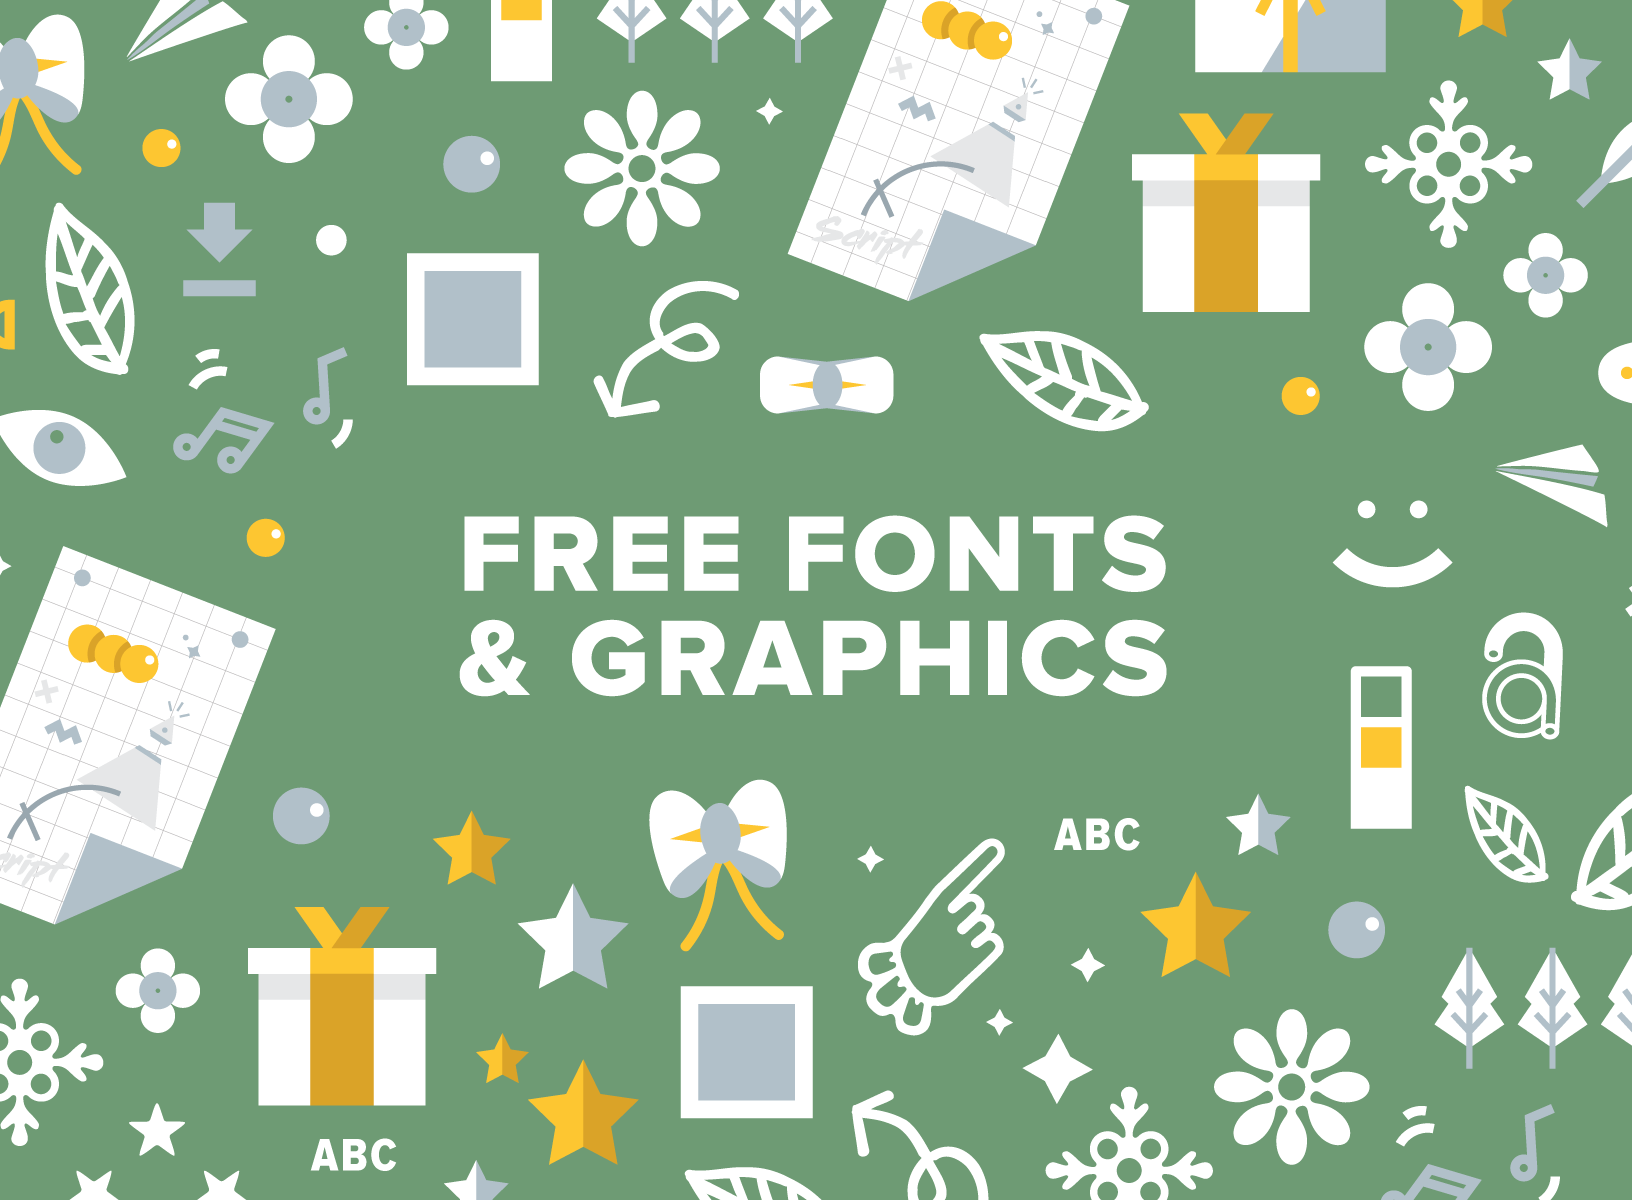 Download Free Fonts and Graphics